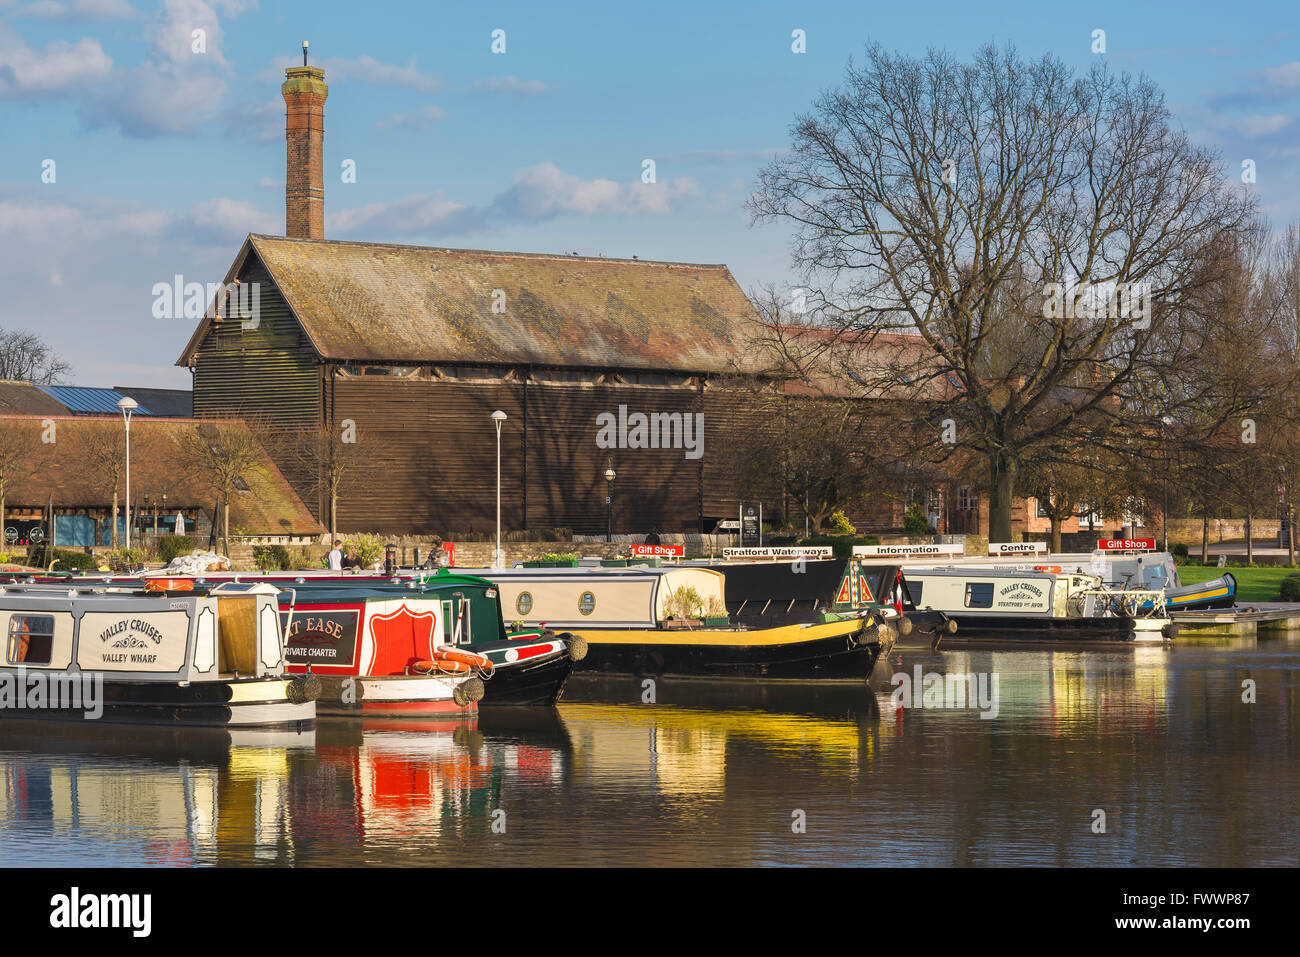 The canal beside Bancroft Gardens in the centre of Stratford Upon Avon, England. - Stock Image